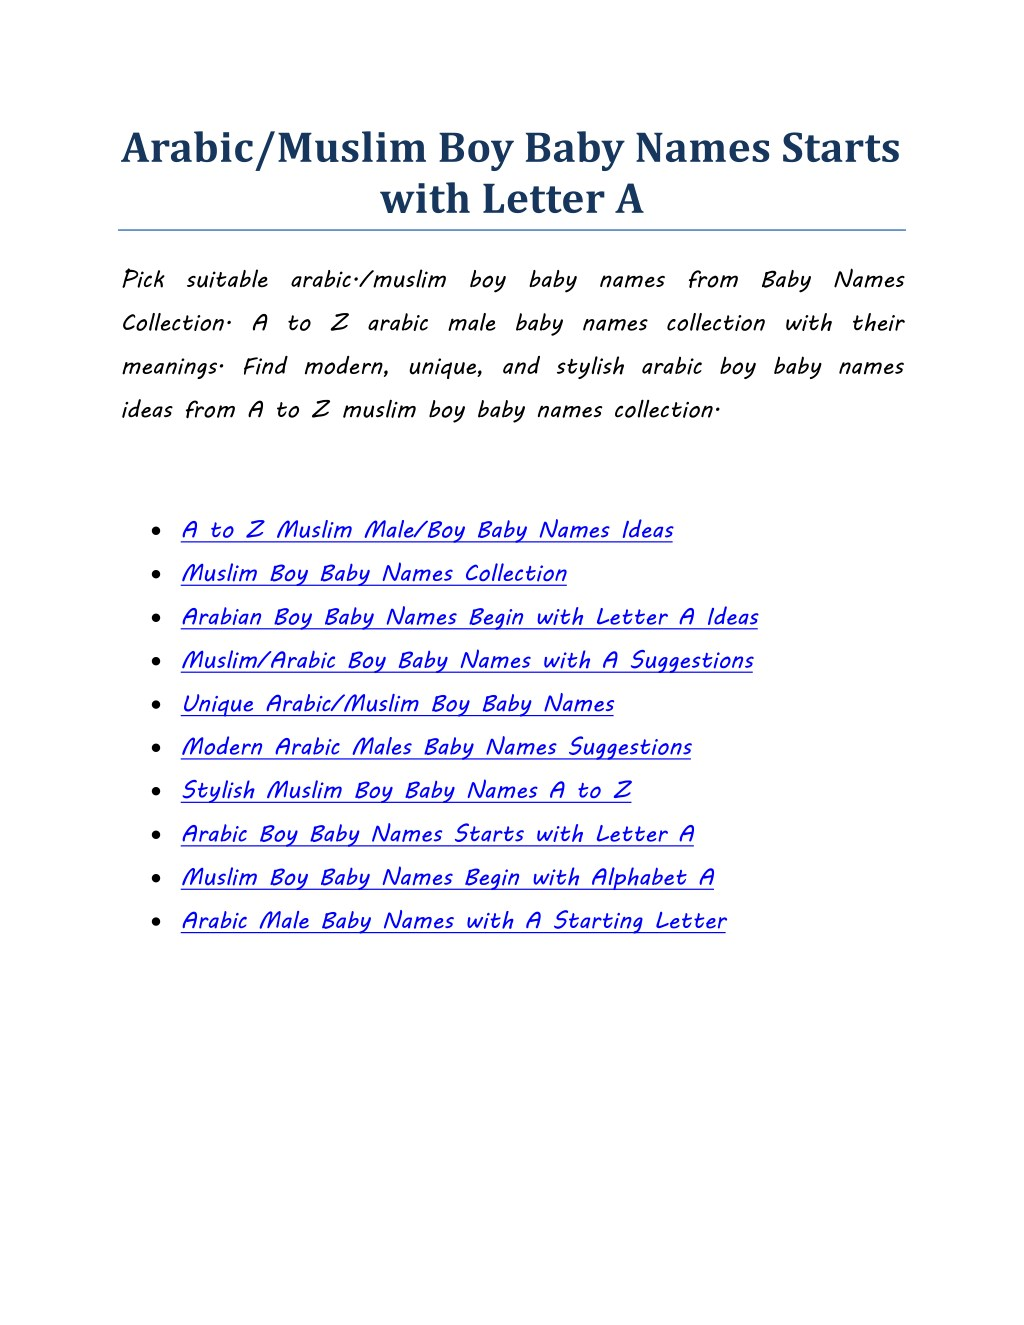 PPT - Arabic/Muslim Boy Baby Names Starts with Letter A